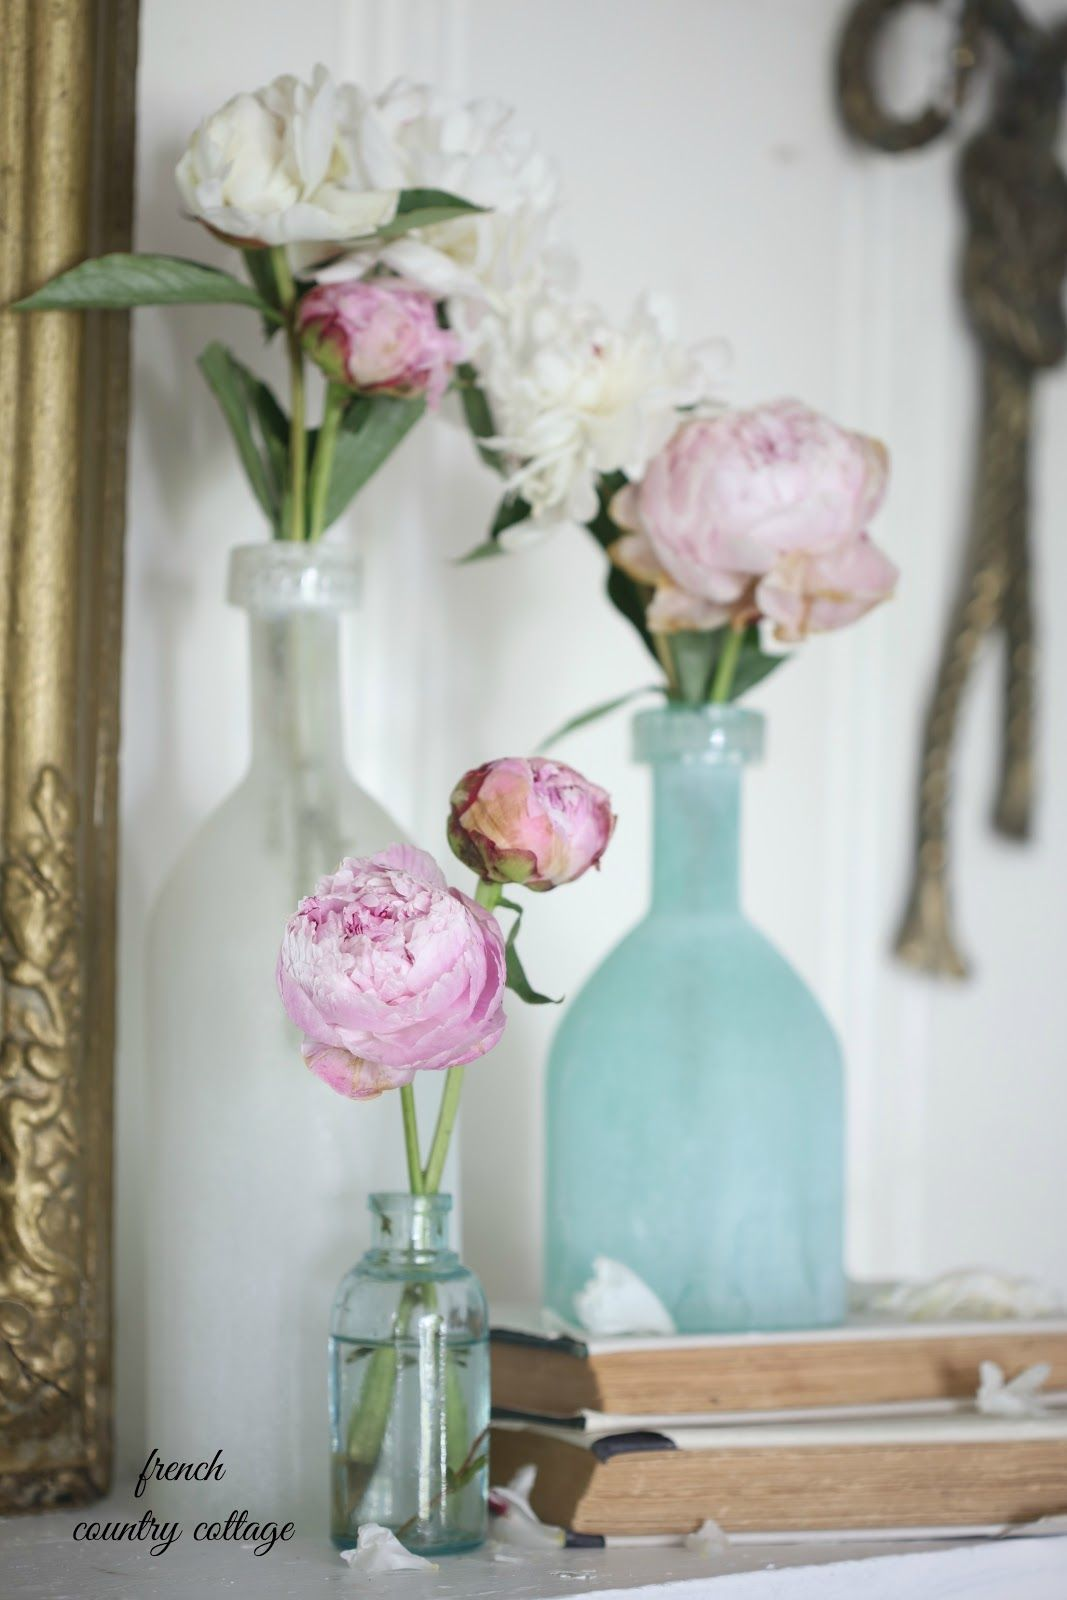 How to style a simple summer mantel in 5 minutes - FRENCH COUNTRY COTTAGE